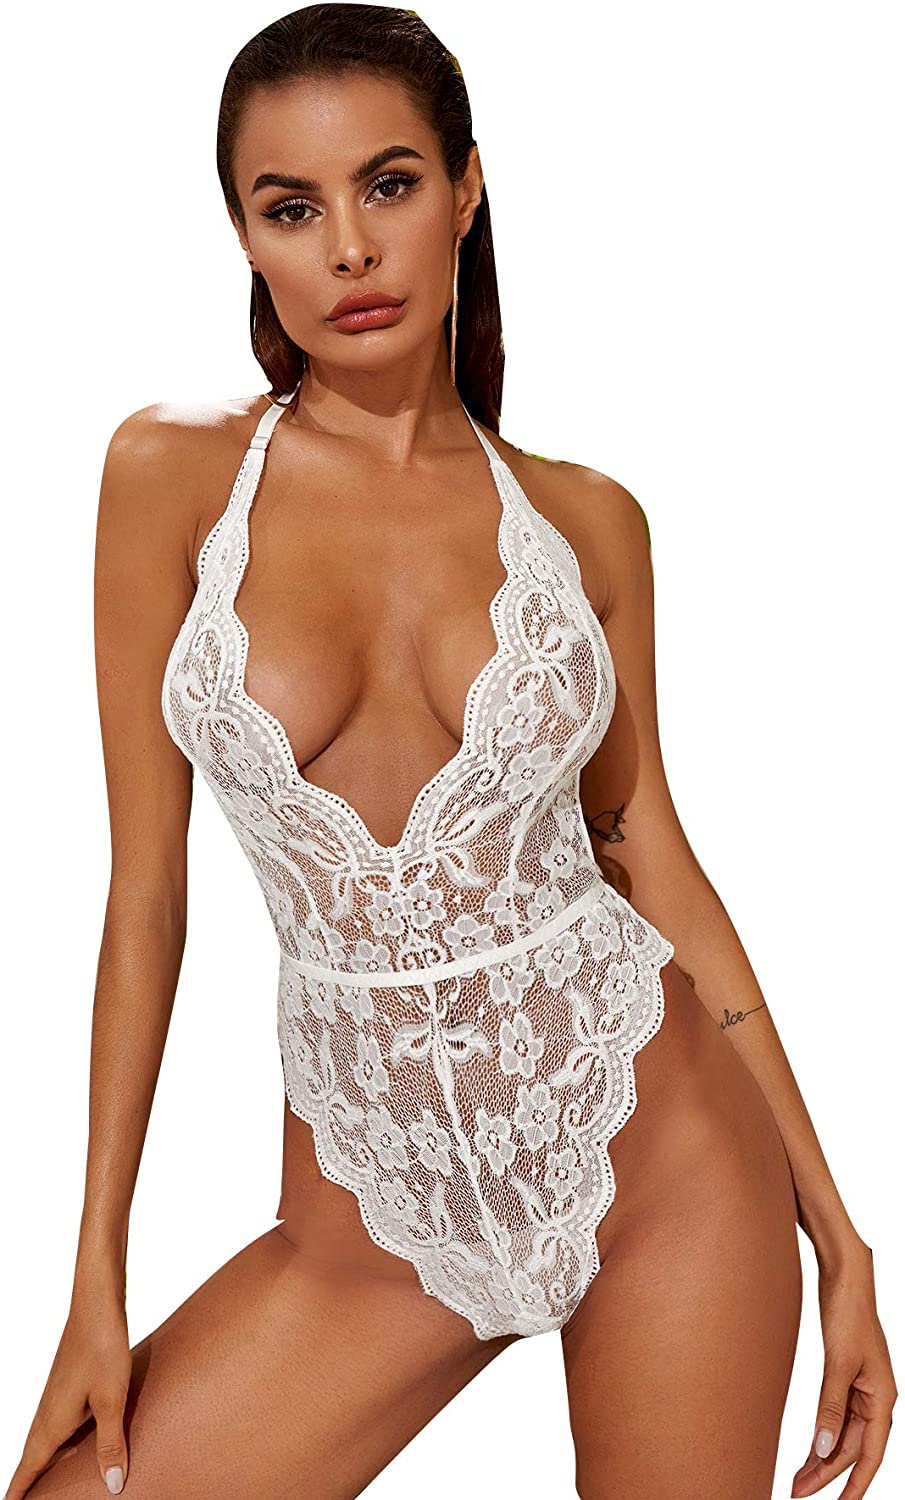 SOLY HUX Women's Lace Sheer Mesh Sexy Teddy Bodysuit Lingerie Sleepwear Nightwear